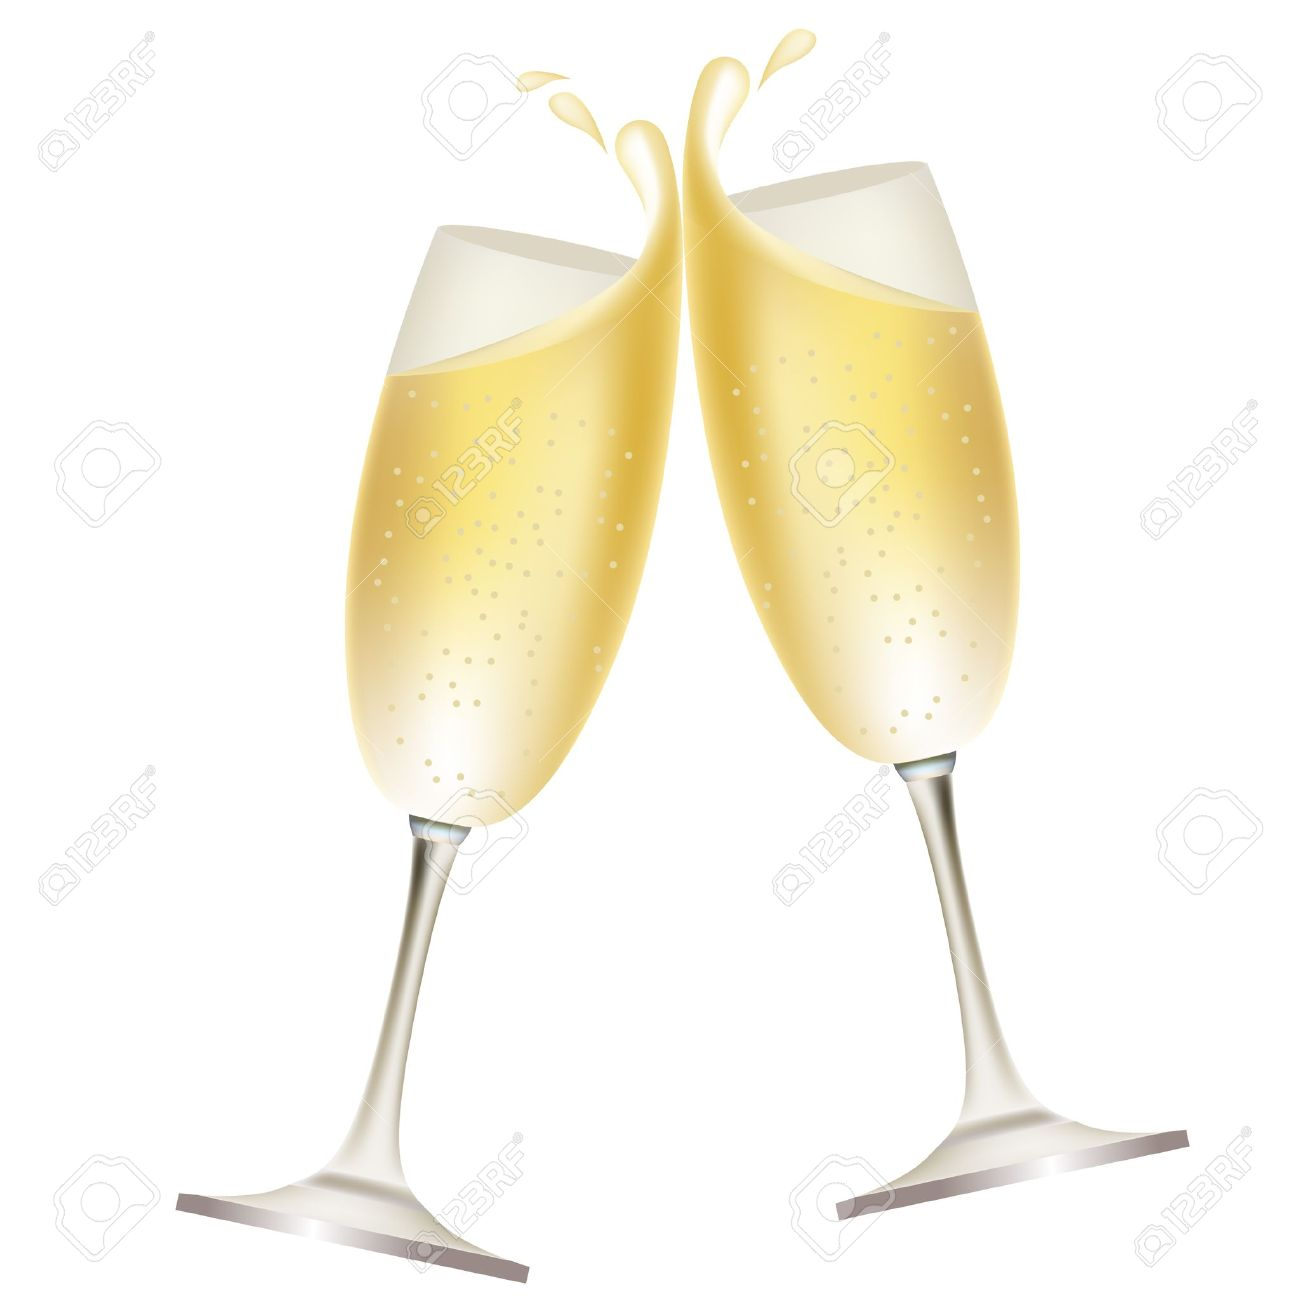 hight resolution of toast clipart champagne glass pencil and in color toast jpg